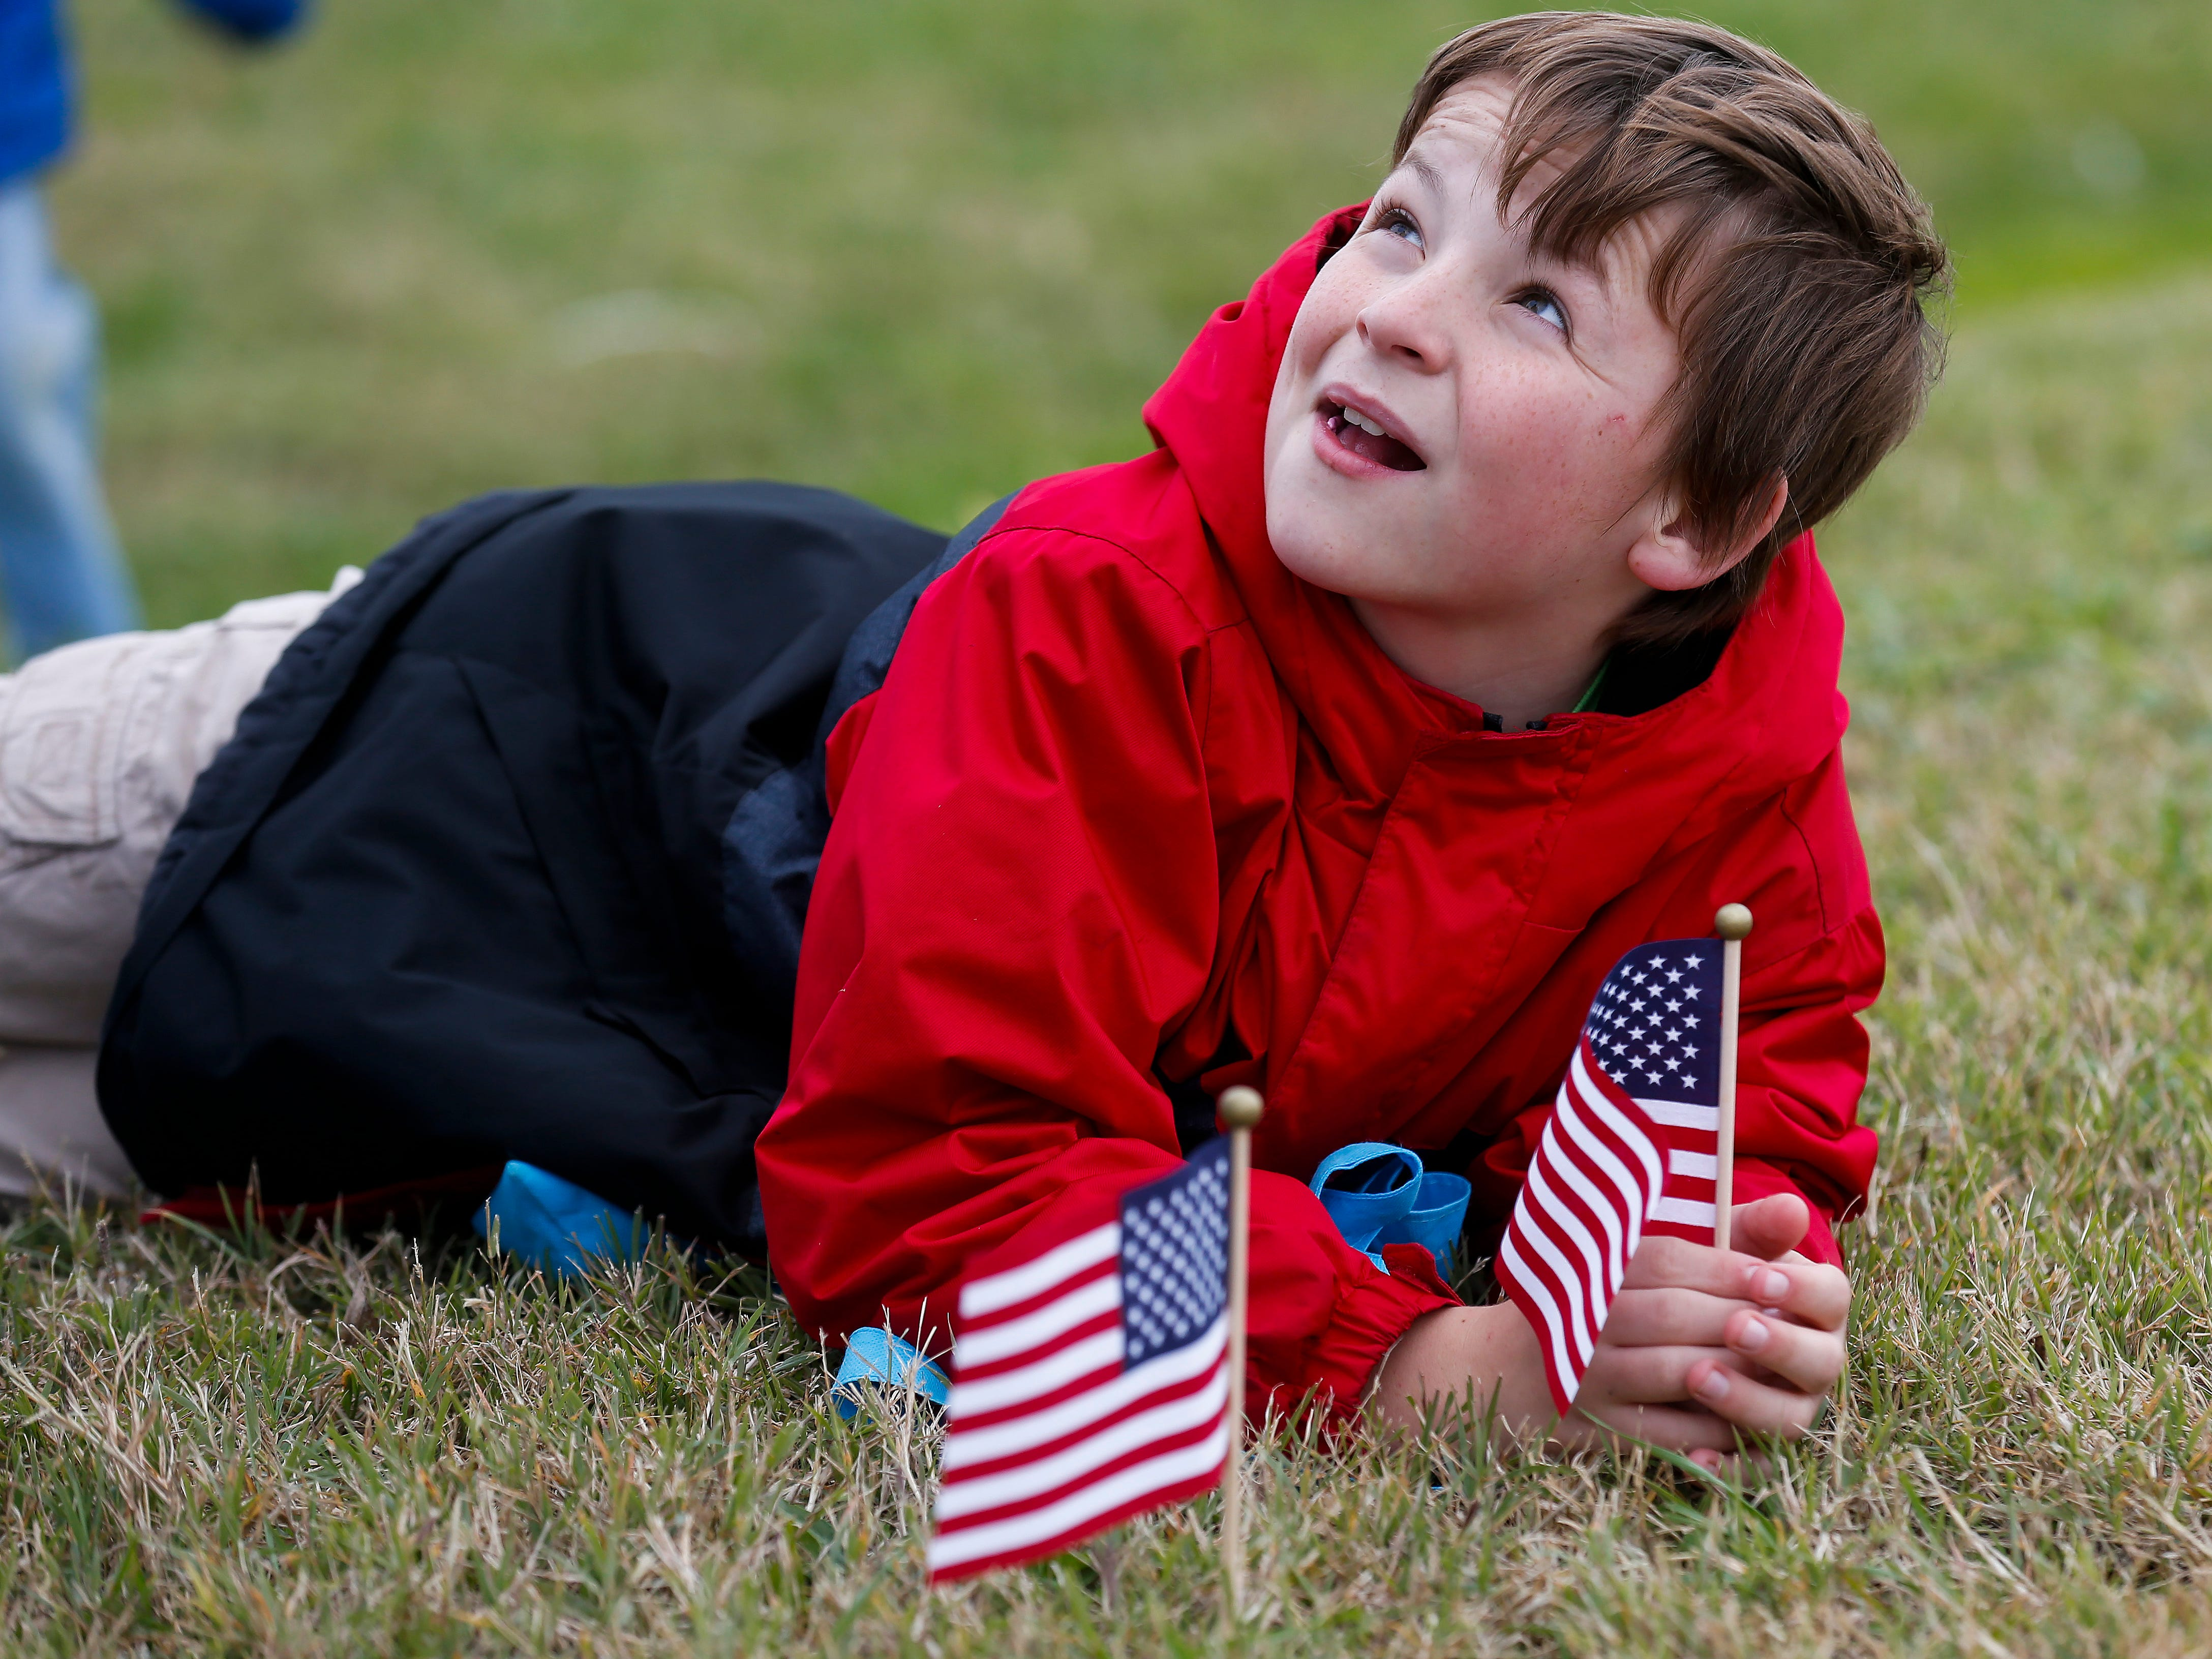 Avory Sutton, 11, puts flags in the ground along East Jackson Street in Willard for the 2nd Annual Western Greene County Veterans Day Parade on Saturday, Nov. 3, 2018.